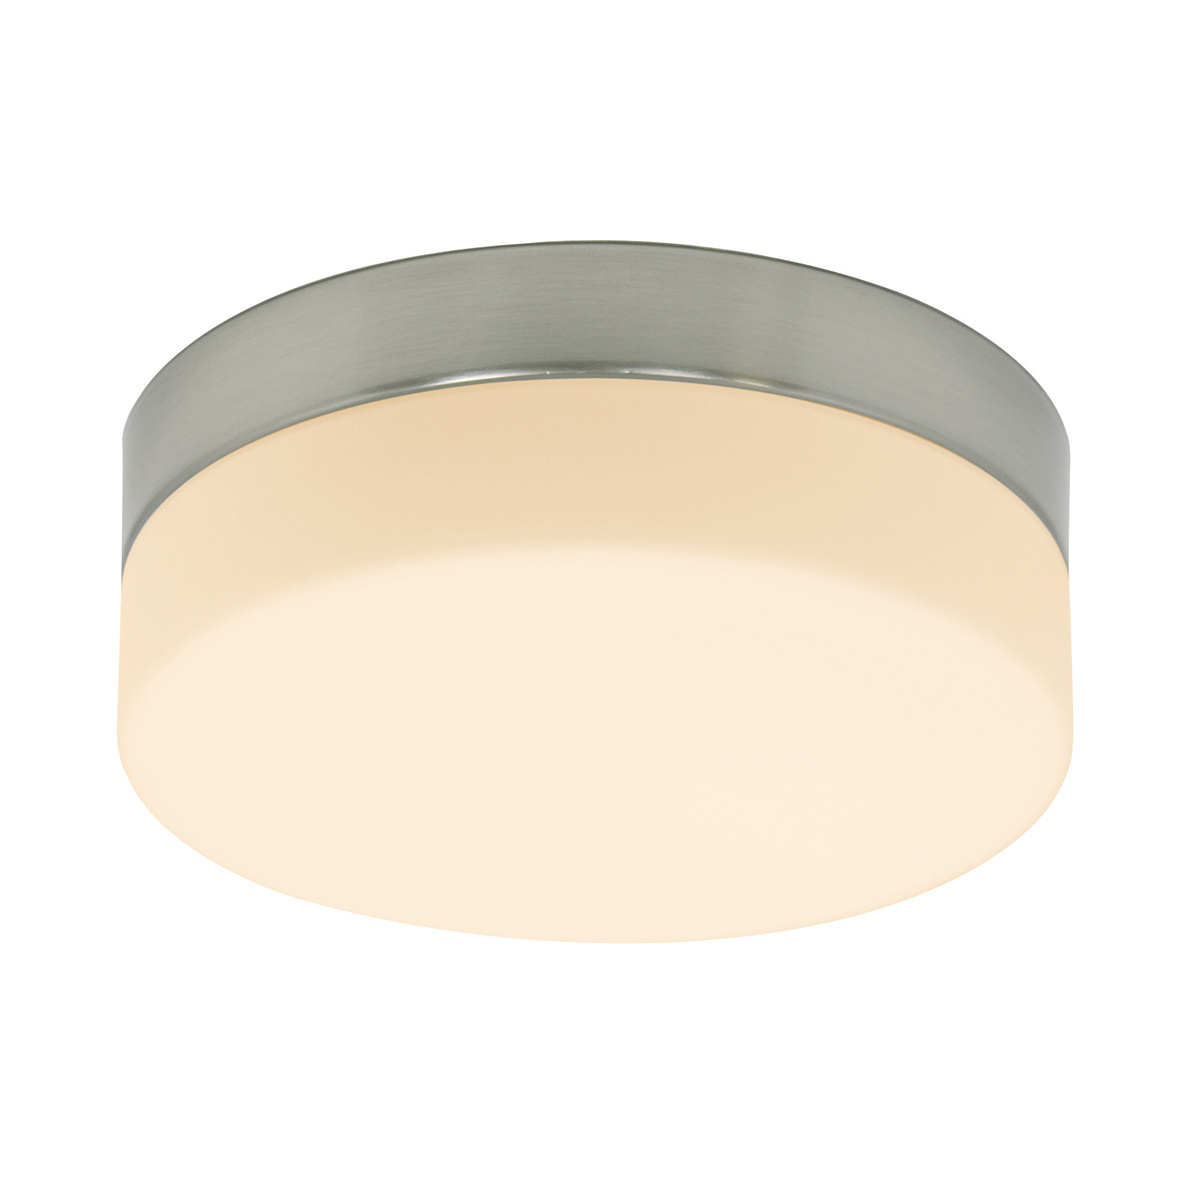 Steinhauer Plafondlamp ceiling and wall IP44 LED 1363st staal